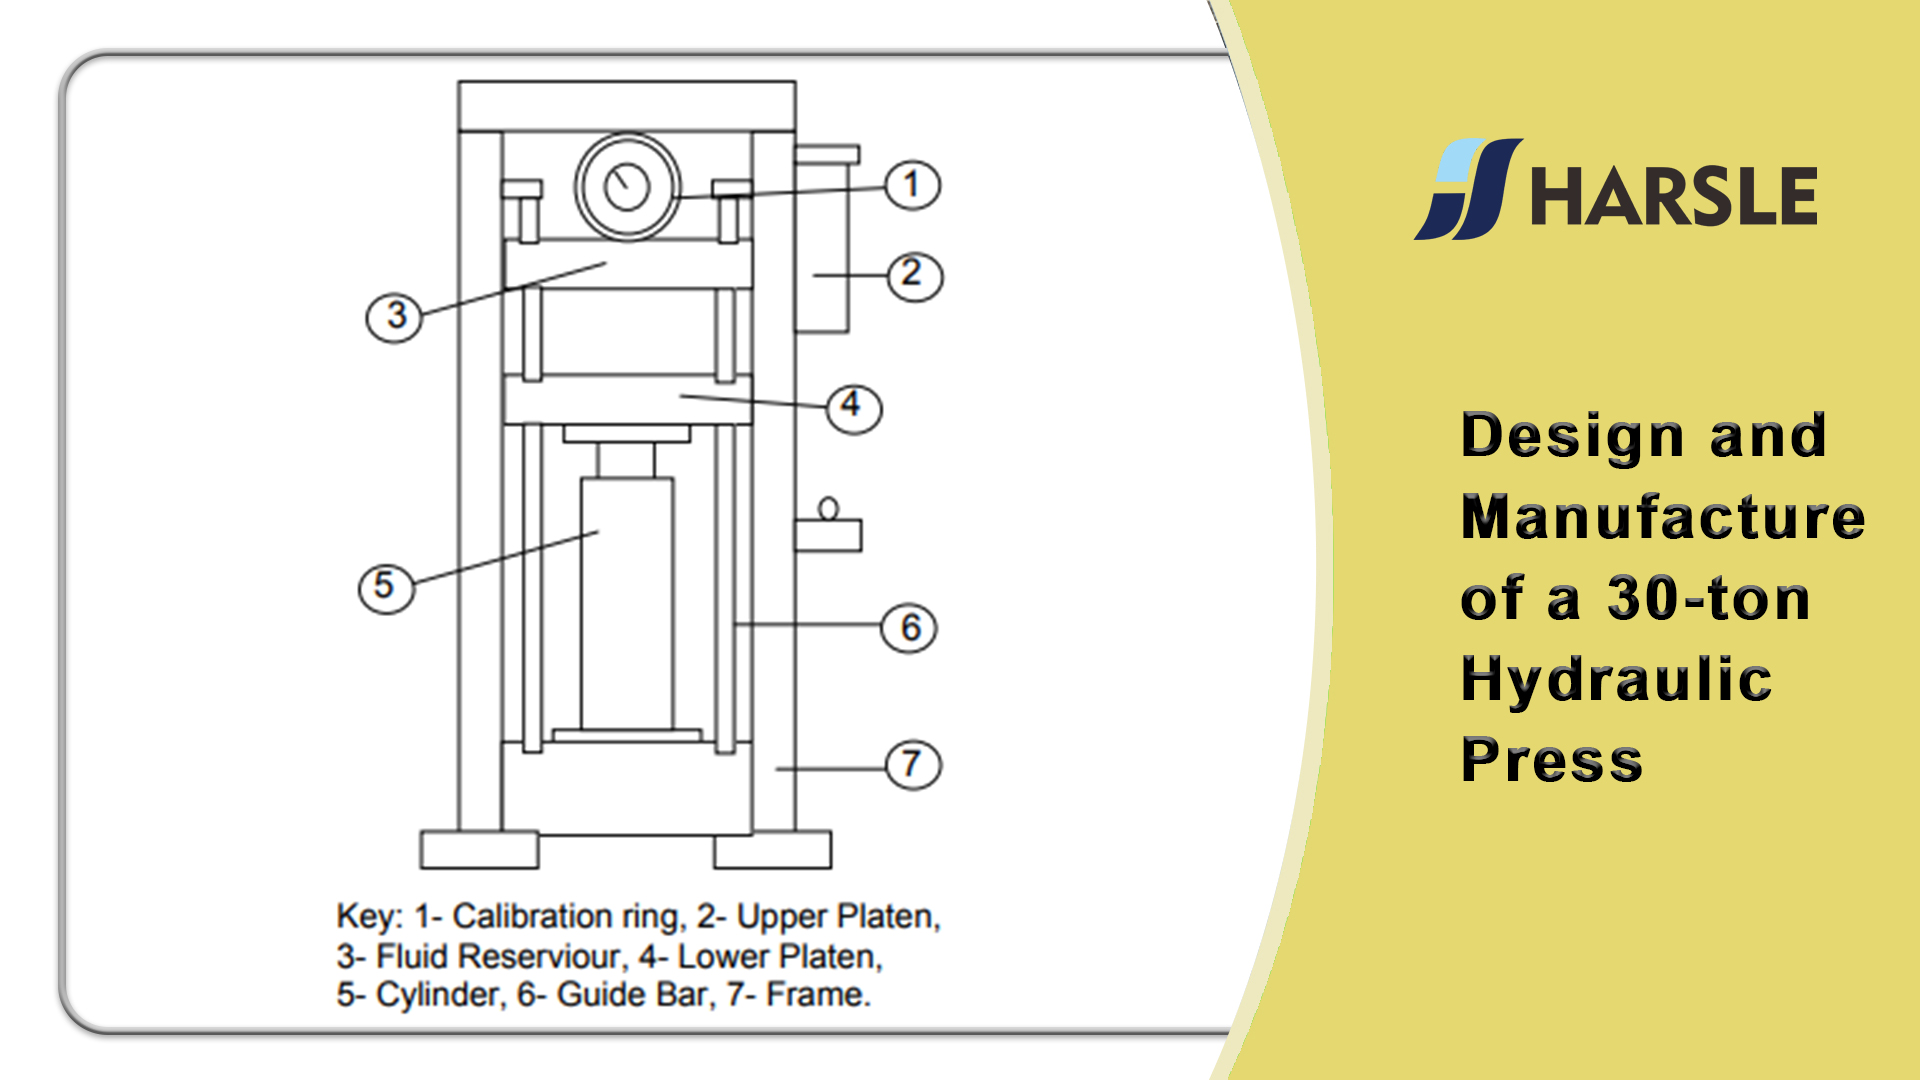 Design and Manufacture of a 30-ton Hydraulic Press - HARSLE MACHINE | Hydraulic Press Schematic |  | Harsle